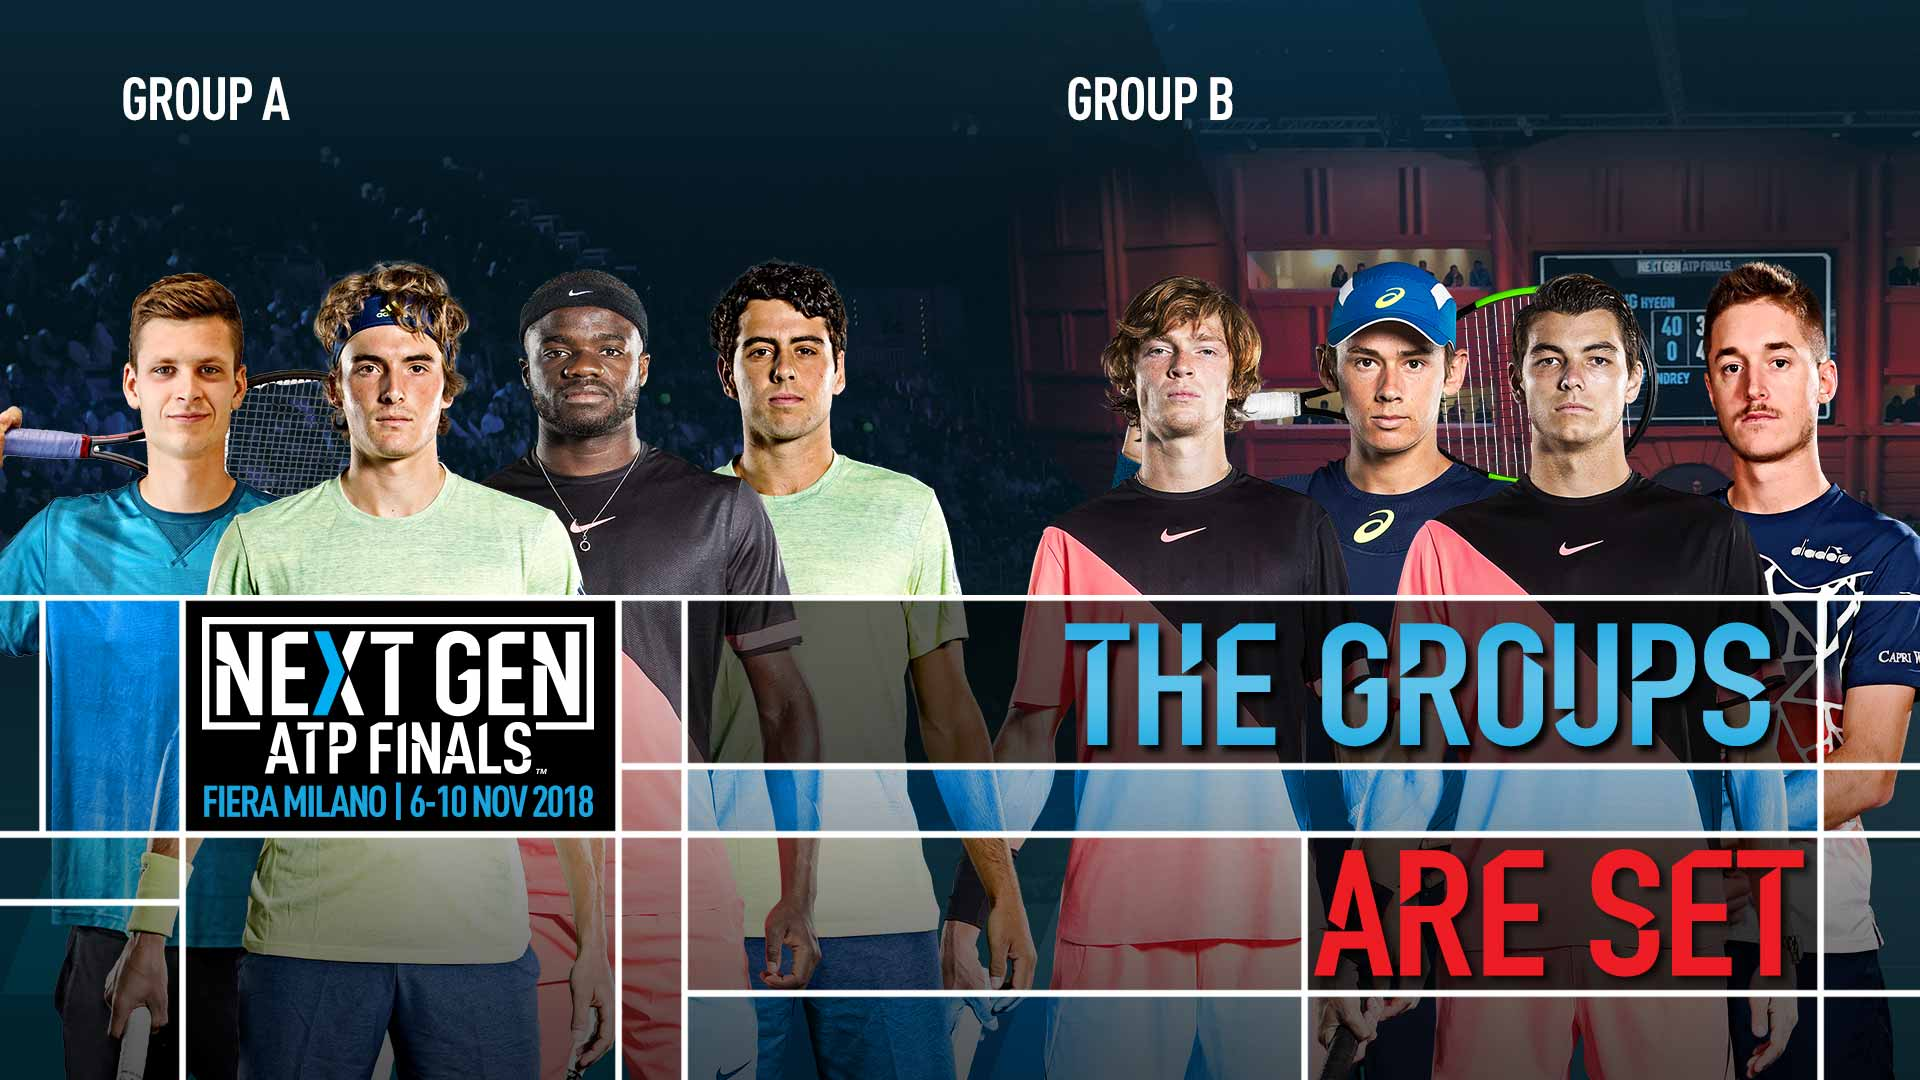 Groups Set For The 2018 Next Gen ATP Finals | Next Gen ATP Finals